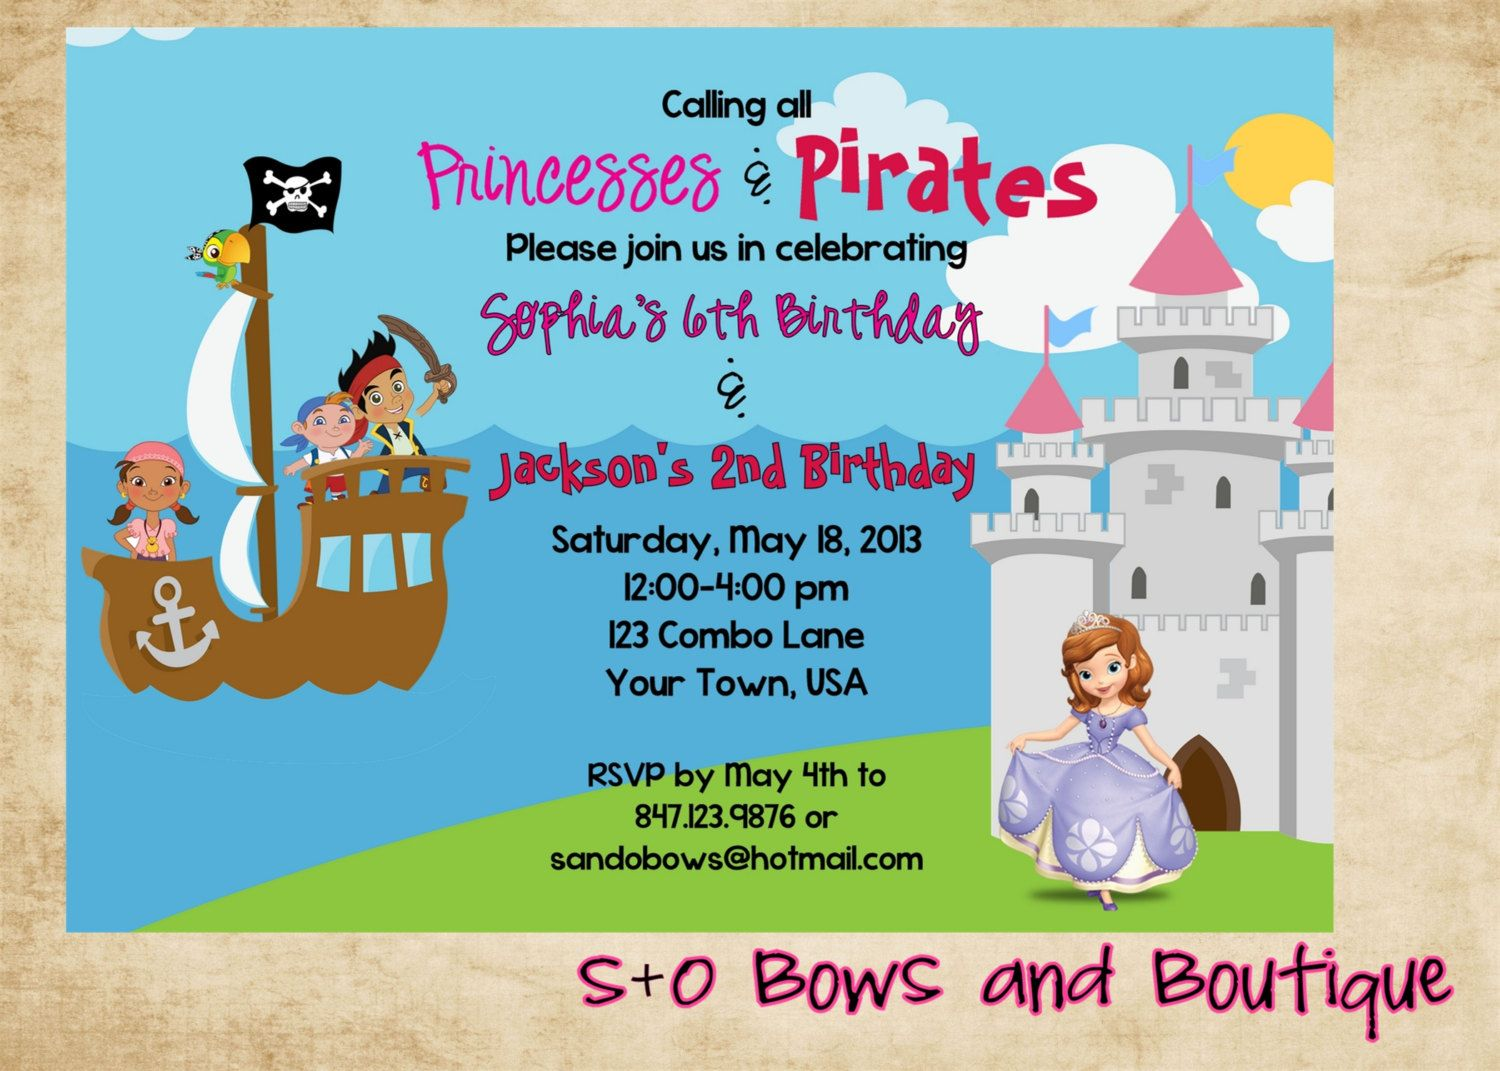 Princesses and pirates party invitation princess pirate party princesses and pirates party invitation filmwisefo